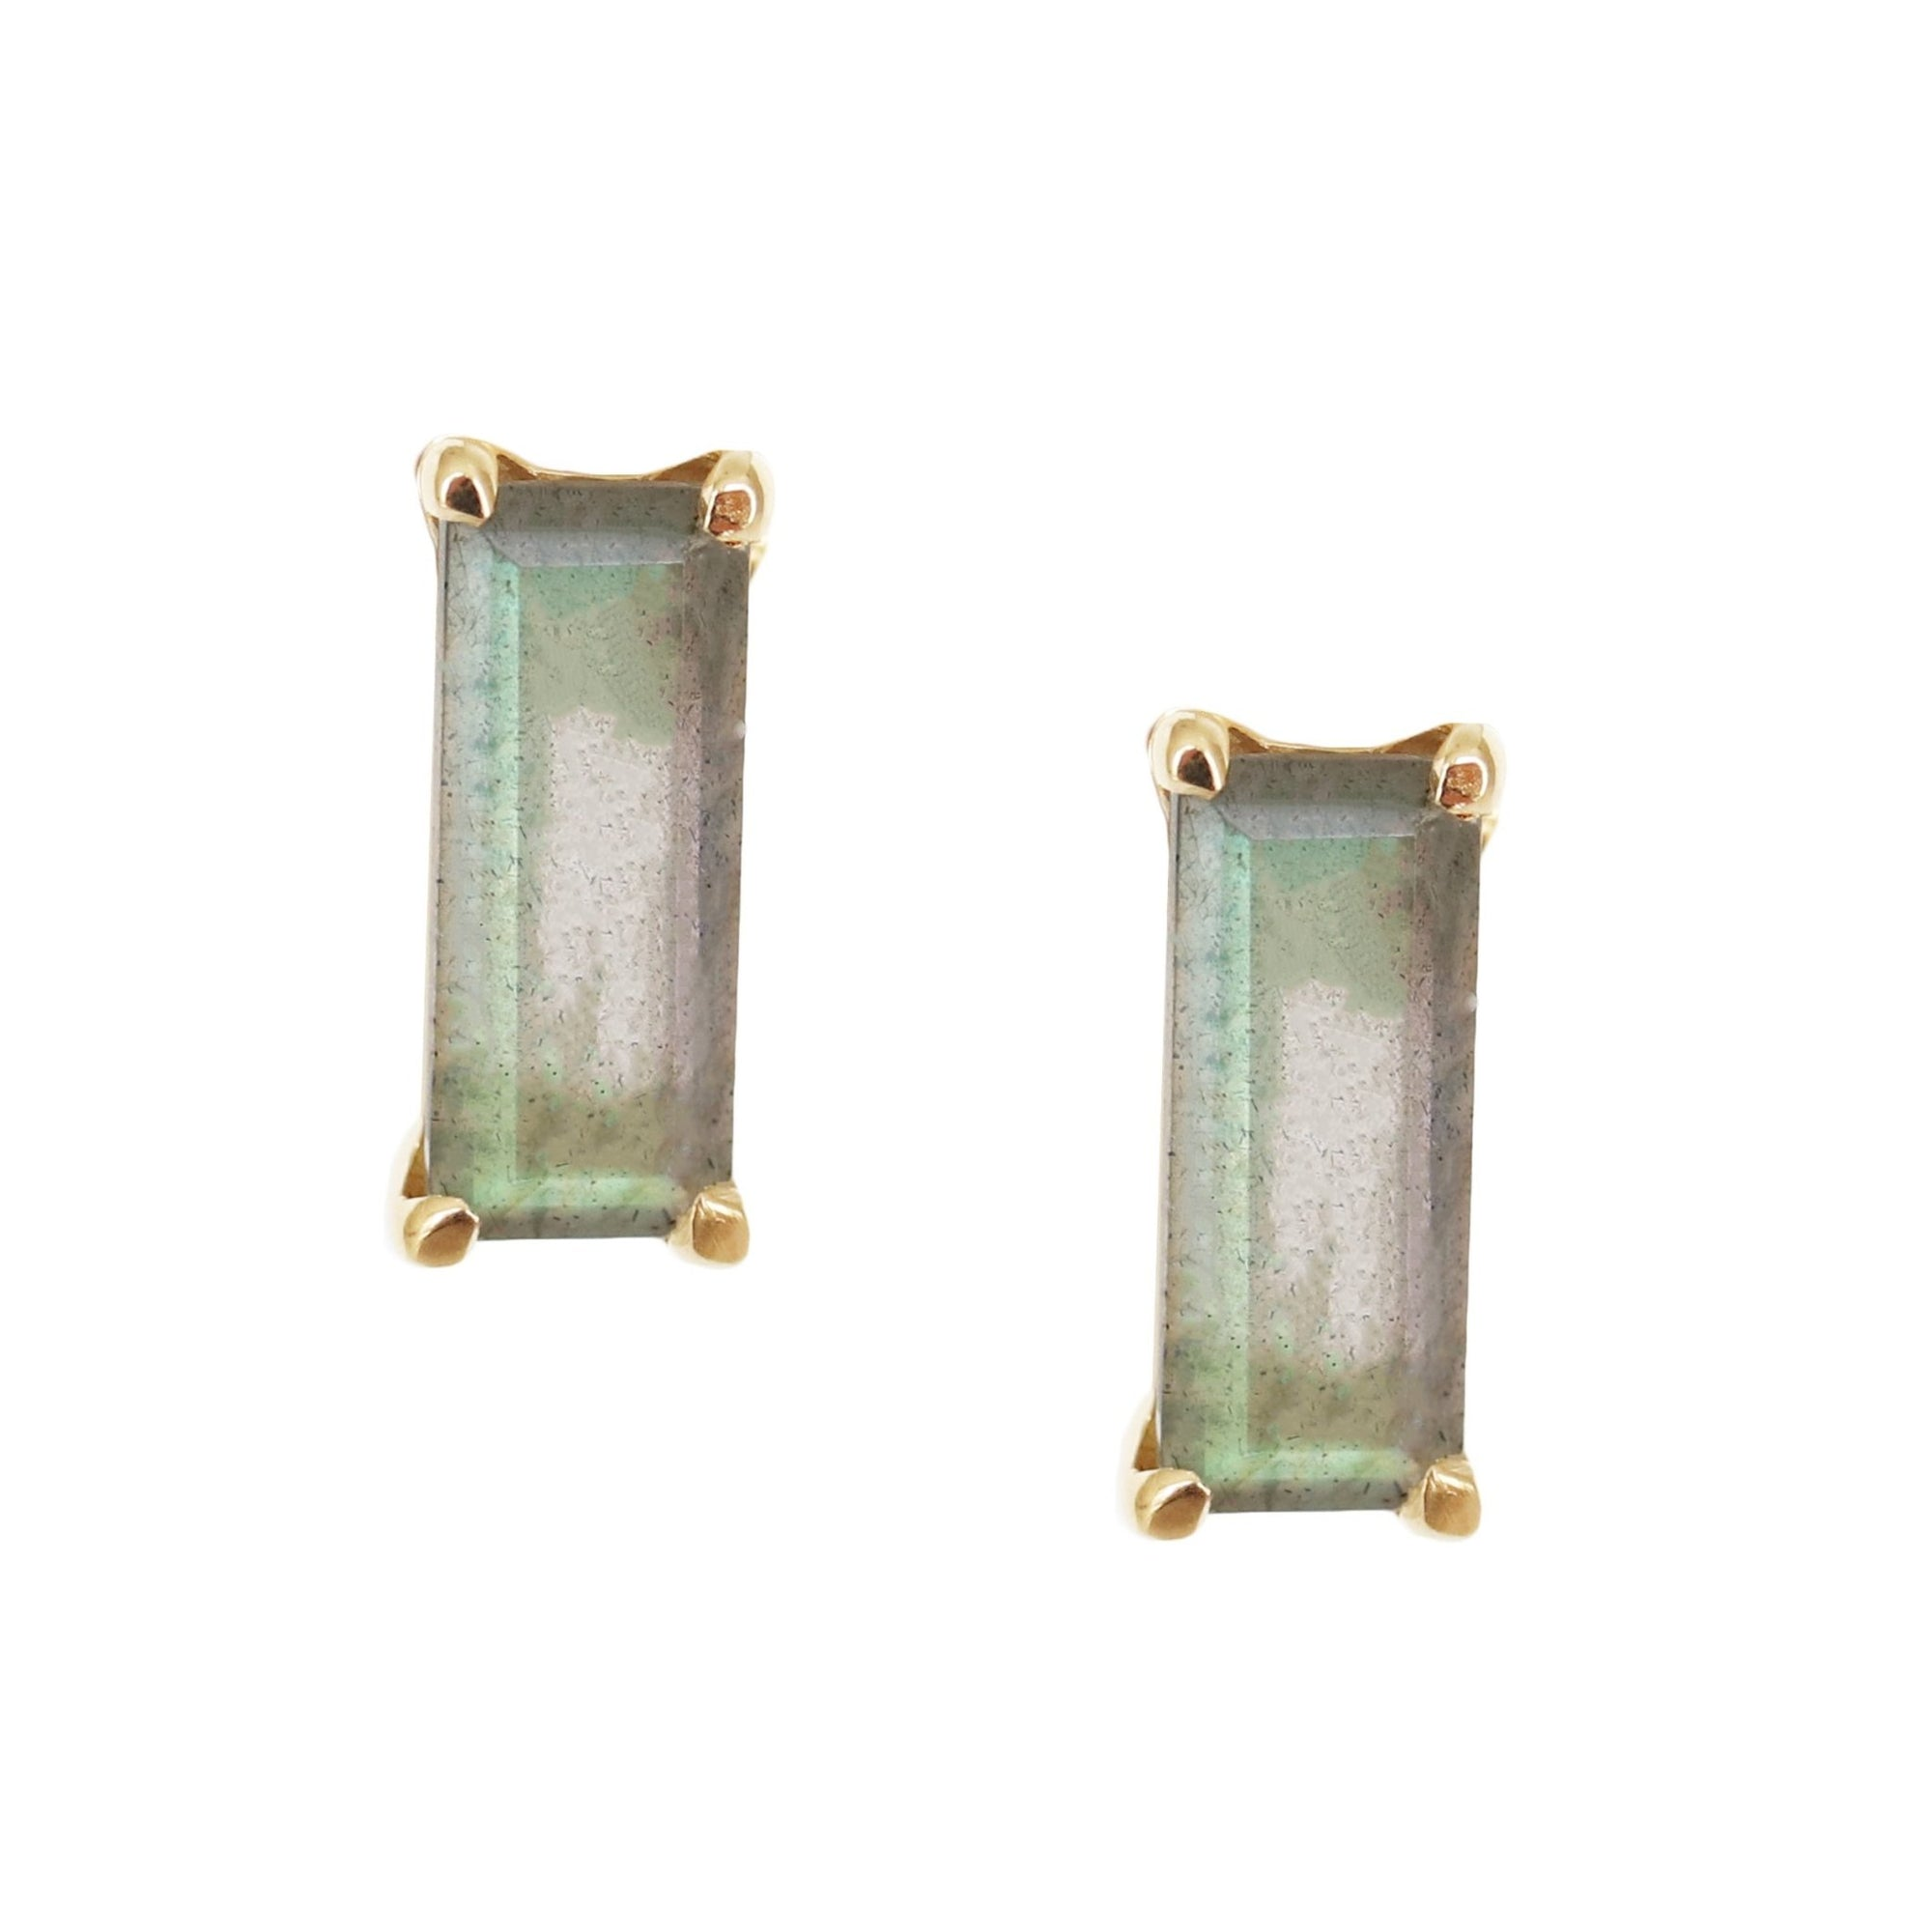 LOYAL STUD EARRINGS - LABRADORITE & GOLD - SO PRETTY CARA COTTER